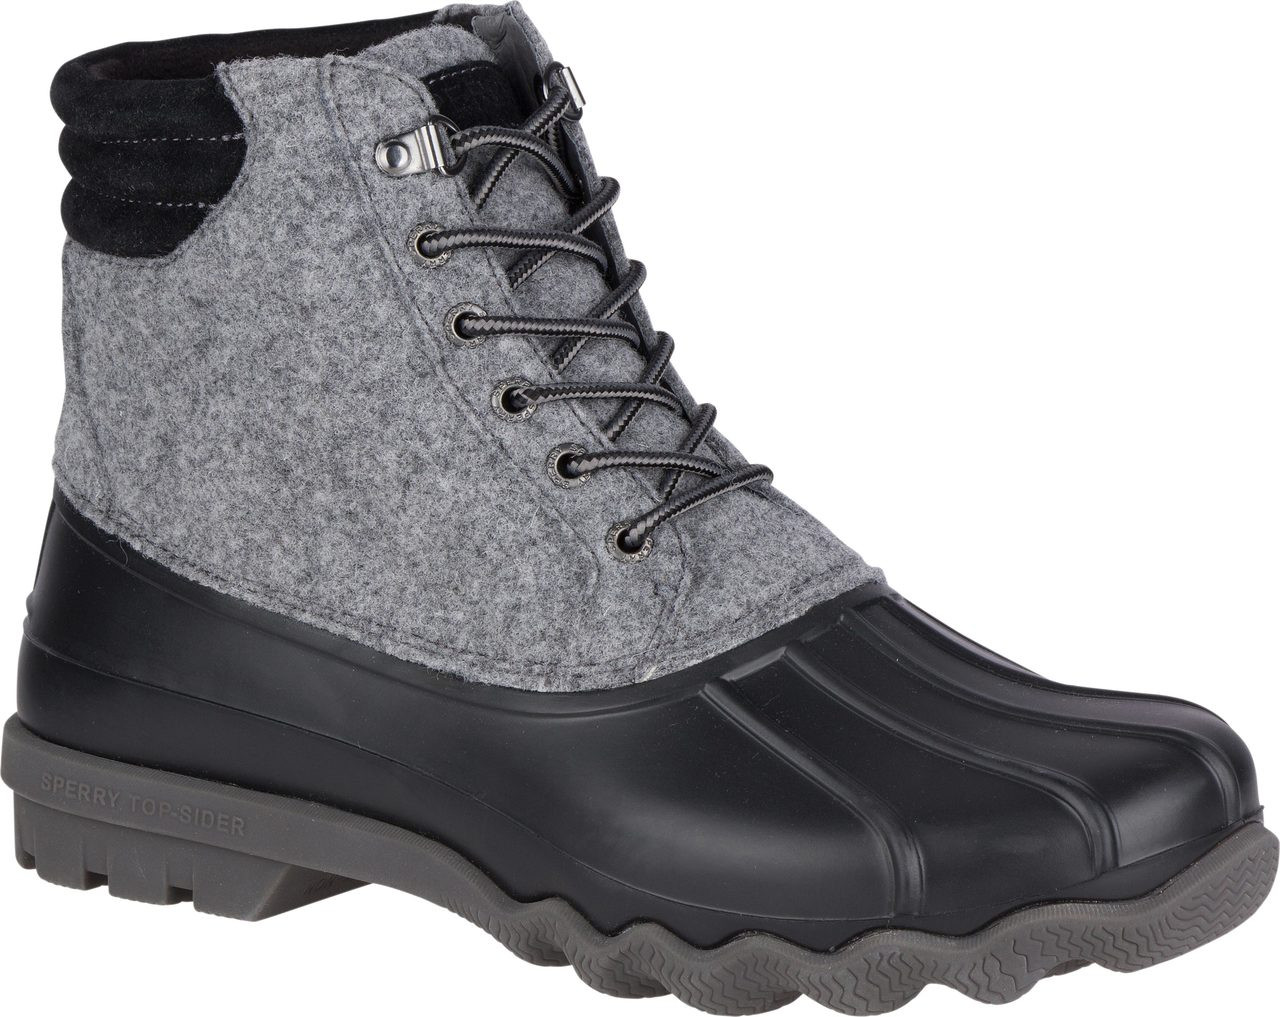 Boots from Sperry Top-Sider offer options for men and women, allowing the entire family to indulge in the outdoors. Conquer trails and sidewalks with every step. Men's fashion often boasts rugged lines but dull designs. Sperry Top-Sider boots offer much-needed alternatives, however.